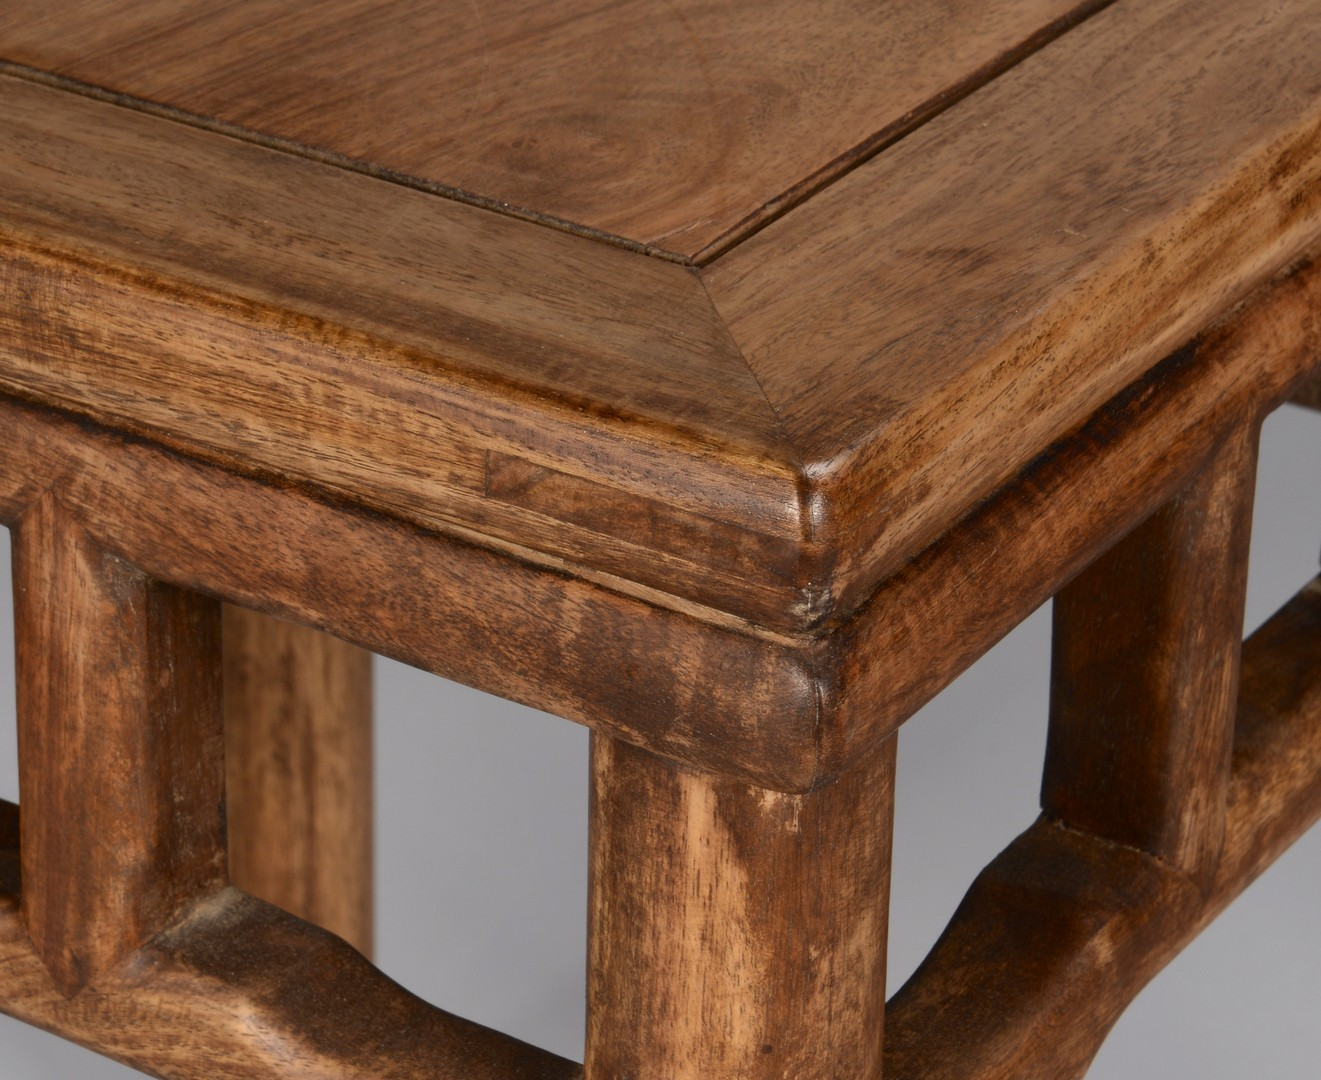 Lot 3594172: Pr. Chinese Hardwood Low Tables